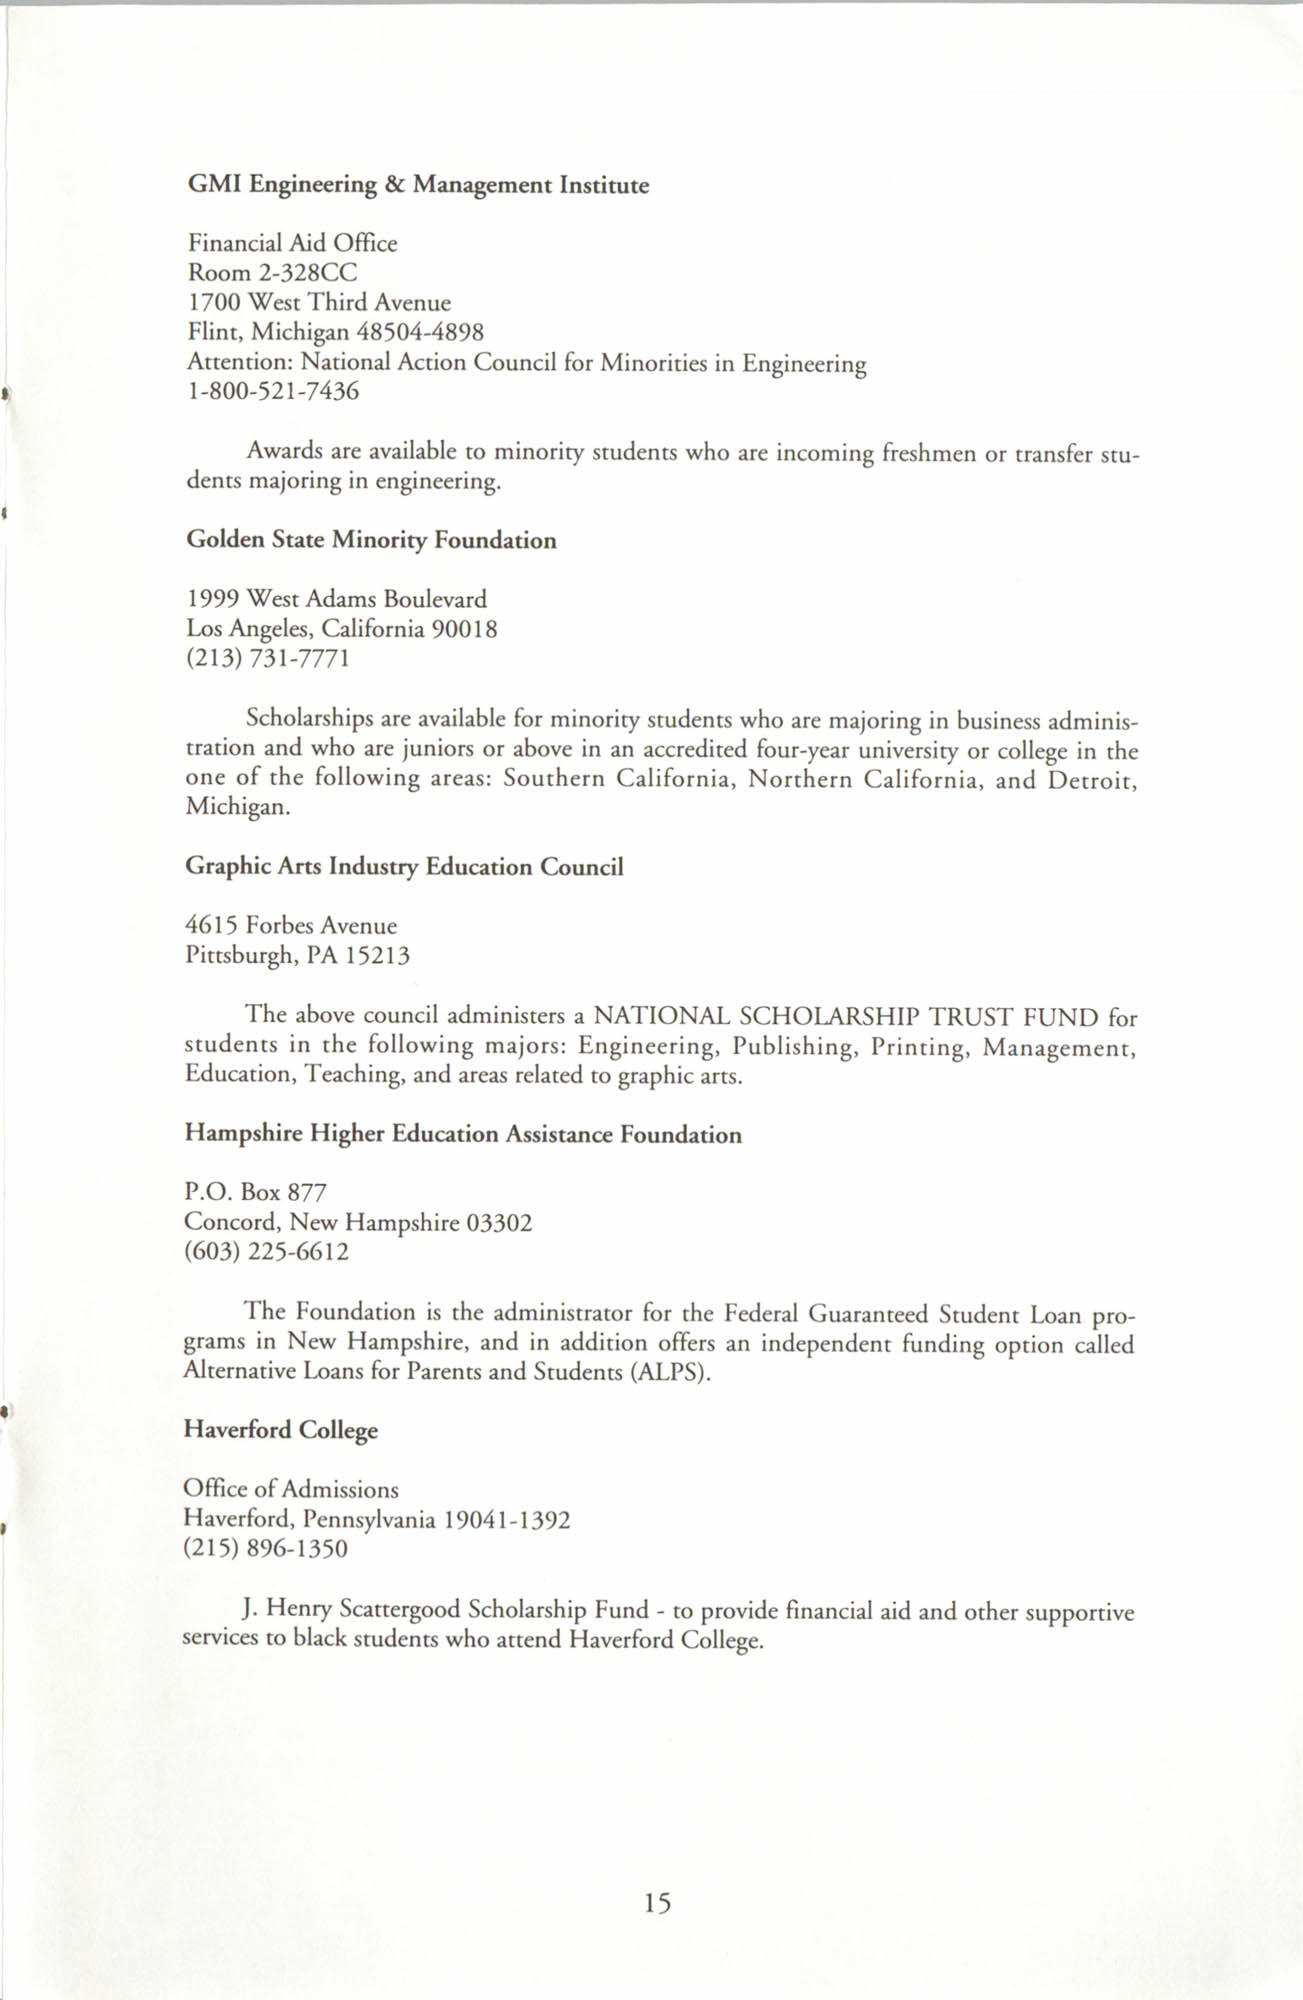 Financial Aid Resource Guide, Education Department, NAACP, Page 15